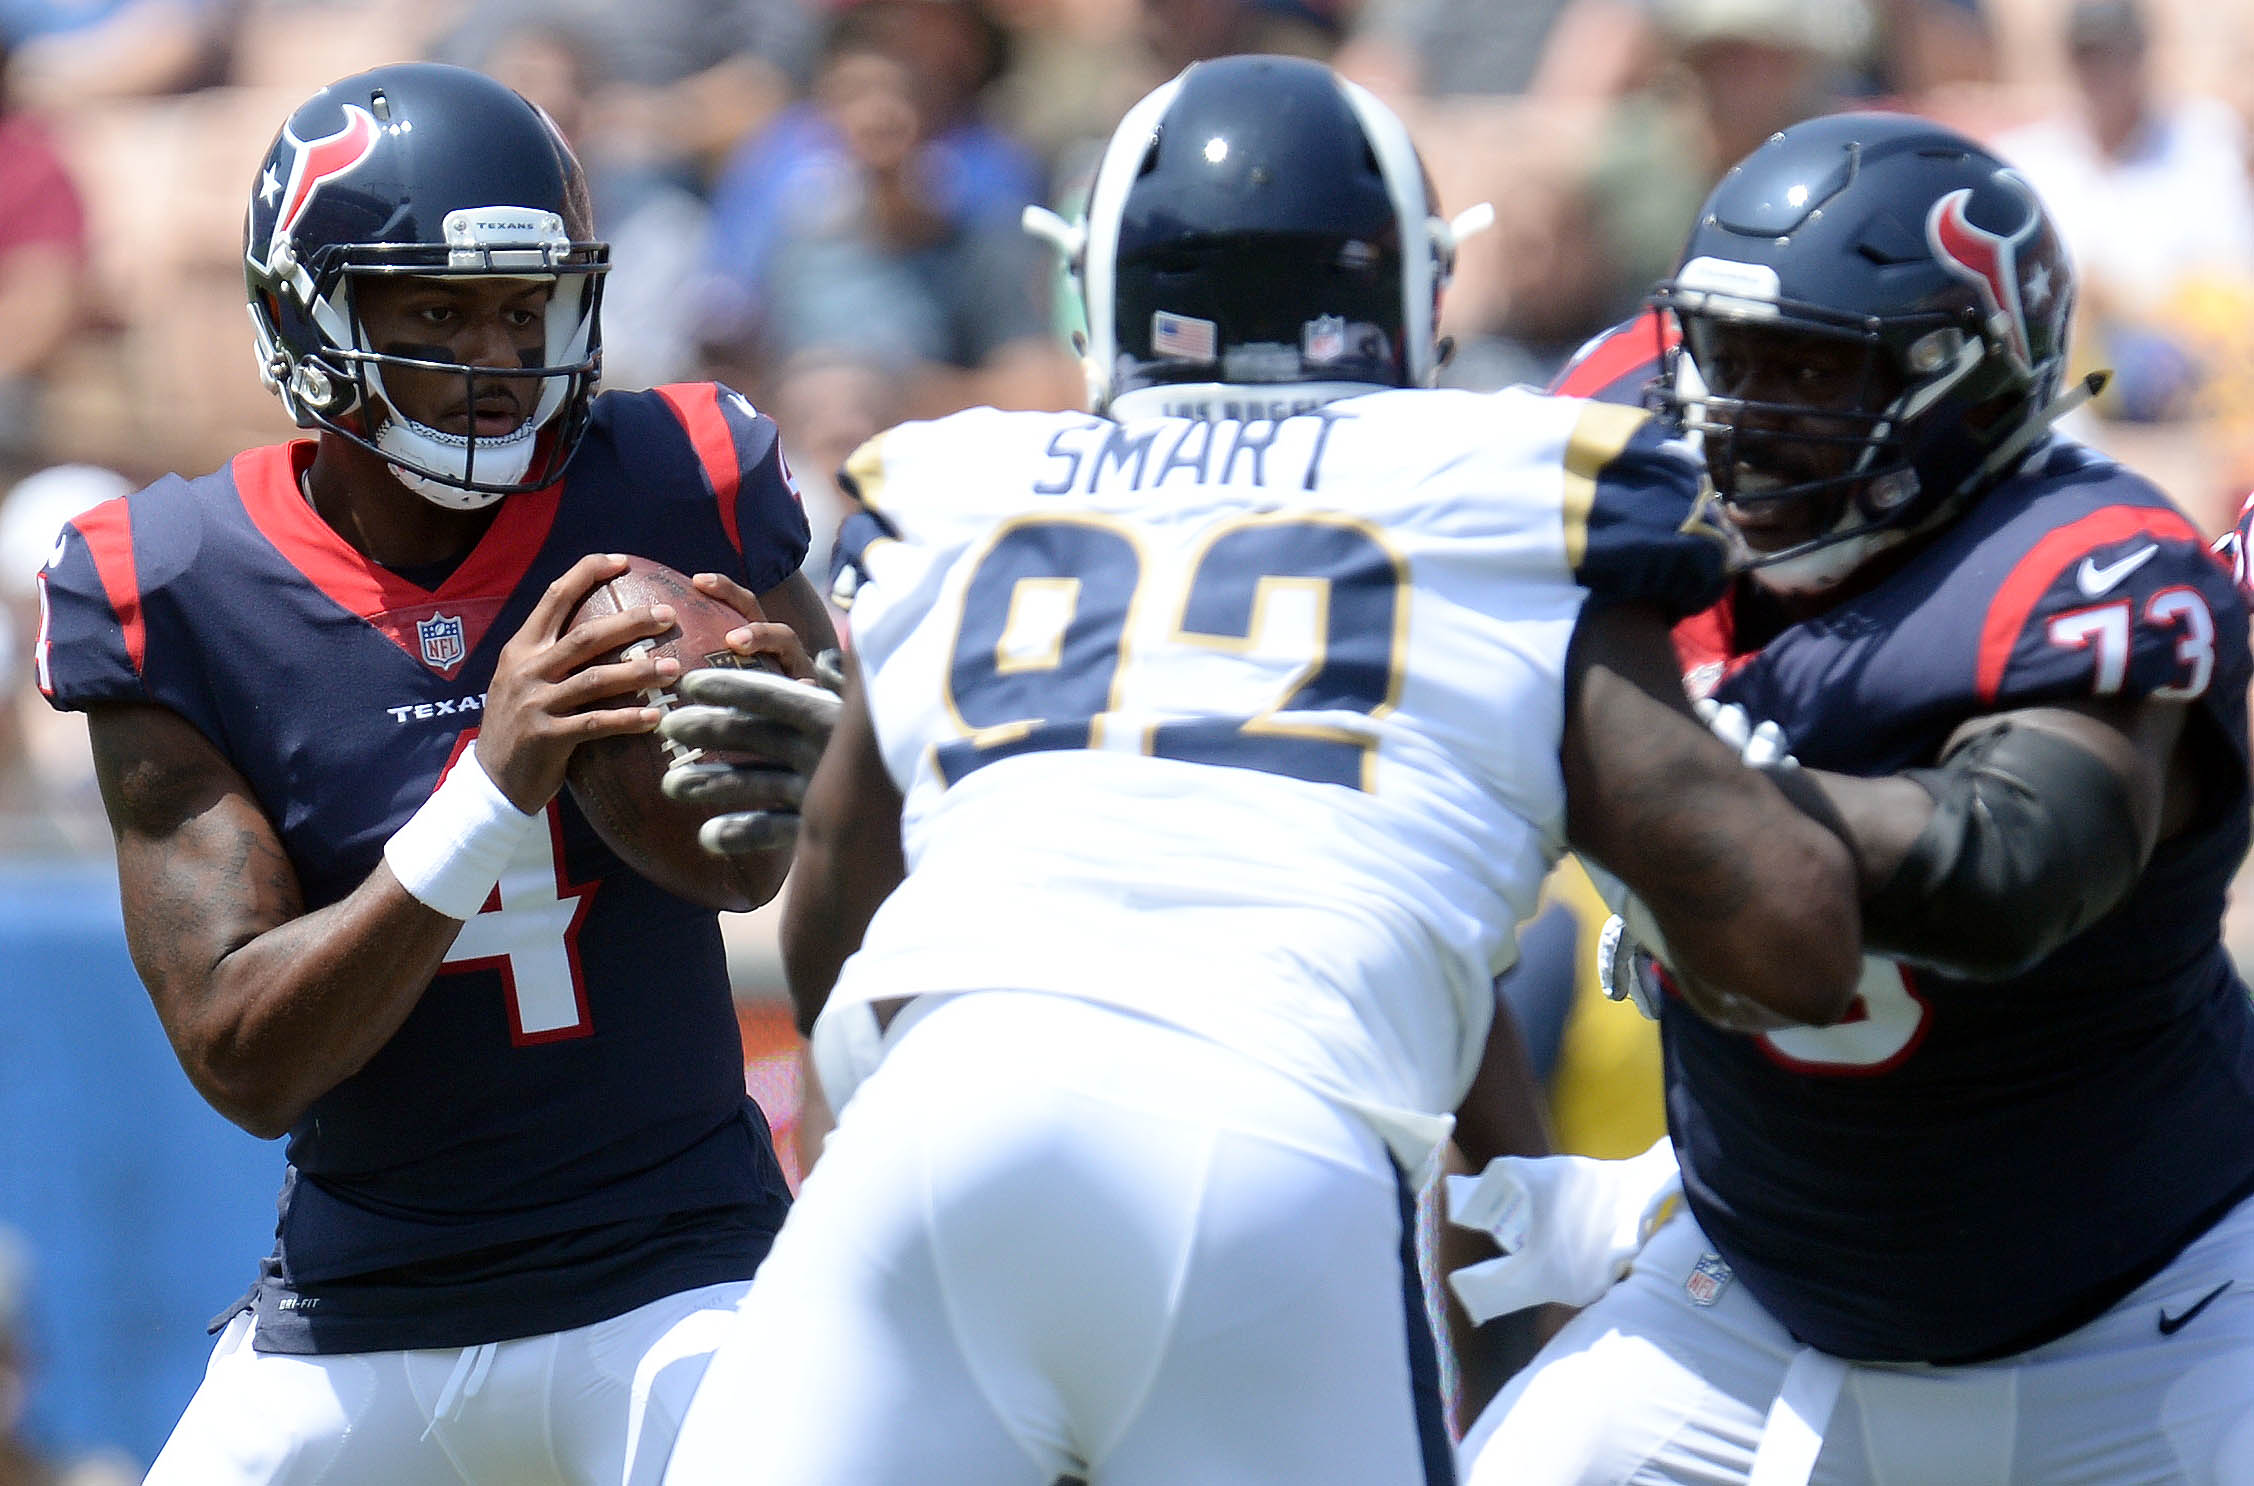 NFL: Houston Texans at Los Angeles Rams